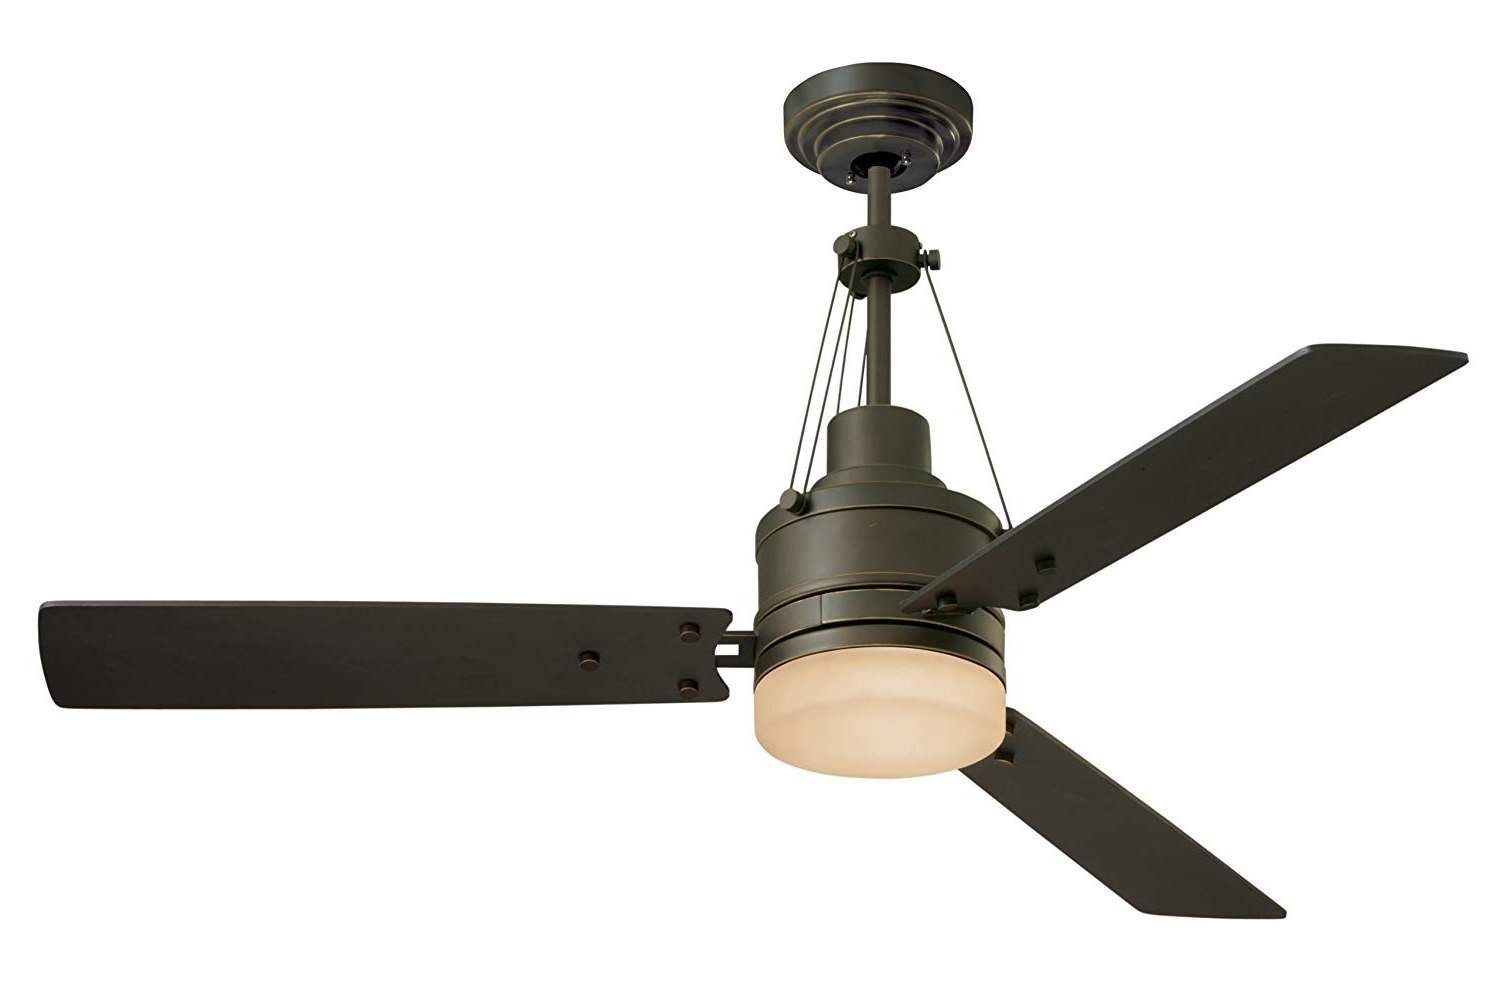 Appealing Emerson Ceiling Fans In Cf205Ges Fan With Light And Remote Regarding Most Popular Amazon Outdoor Ceiling Fans With Lights (View 10 of 20)